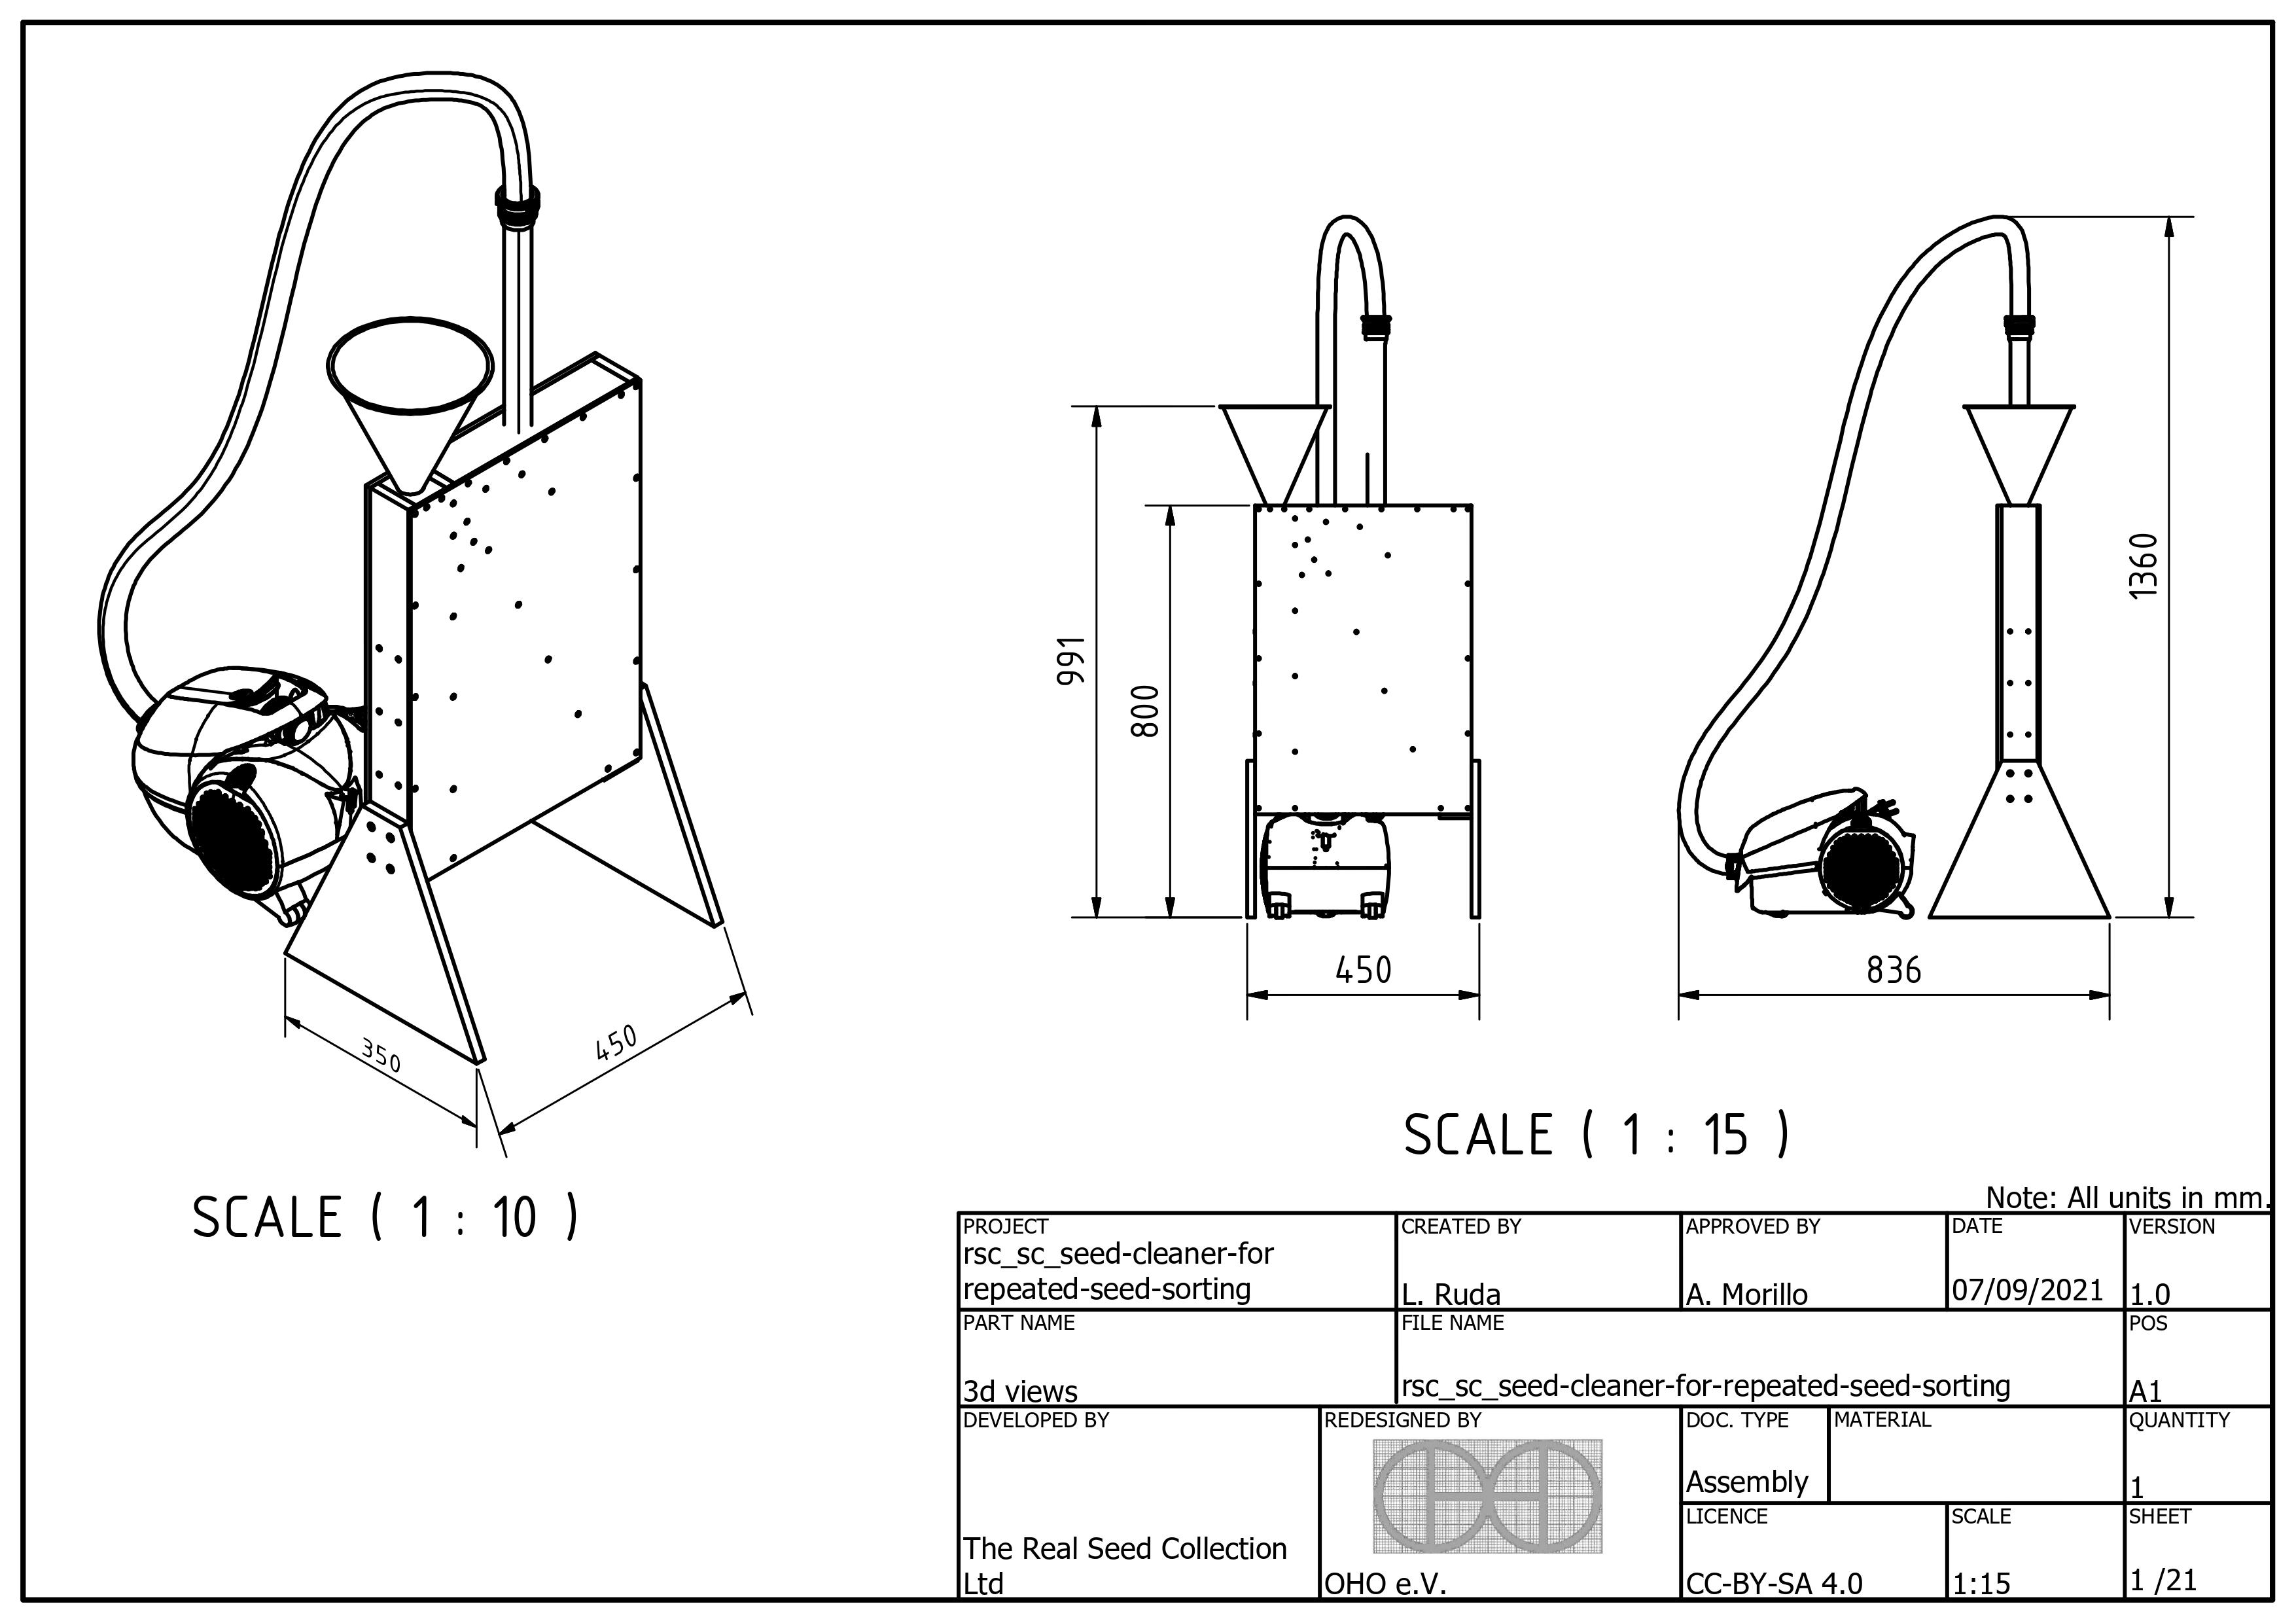 Rsc sc seed-cleaner-for-repeated-seed-sorting 0001.jpg